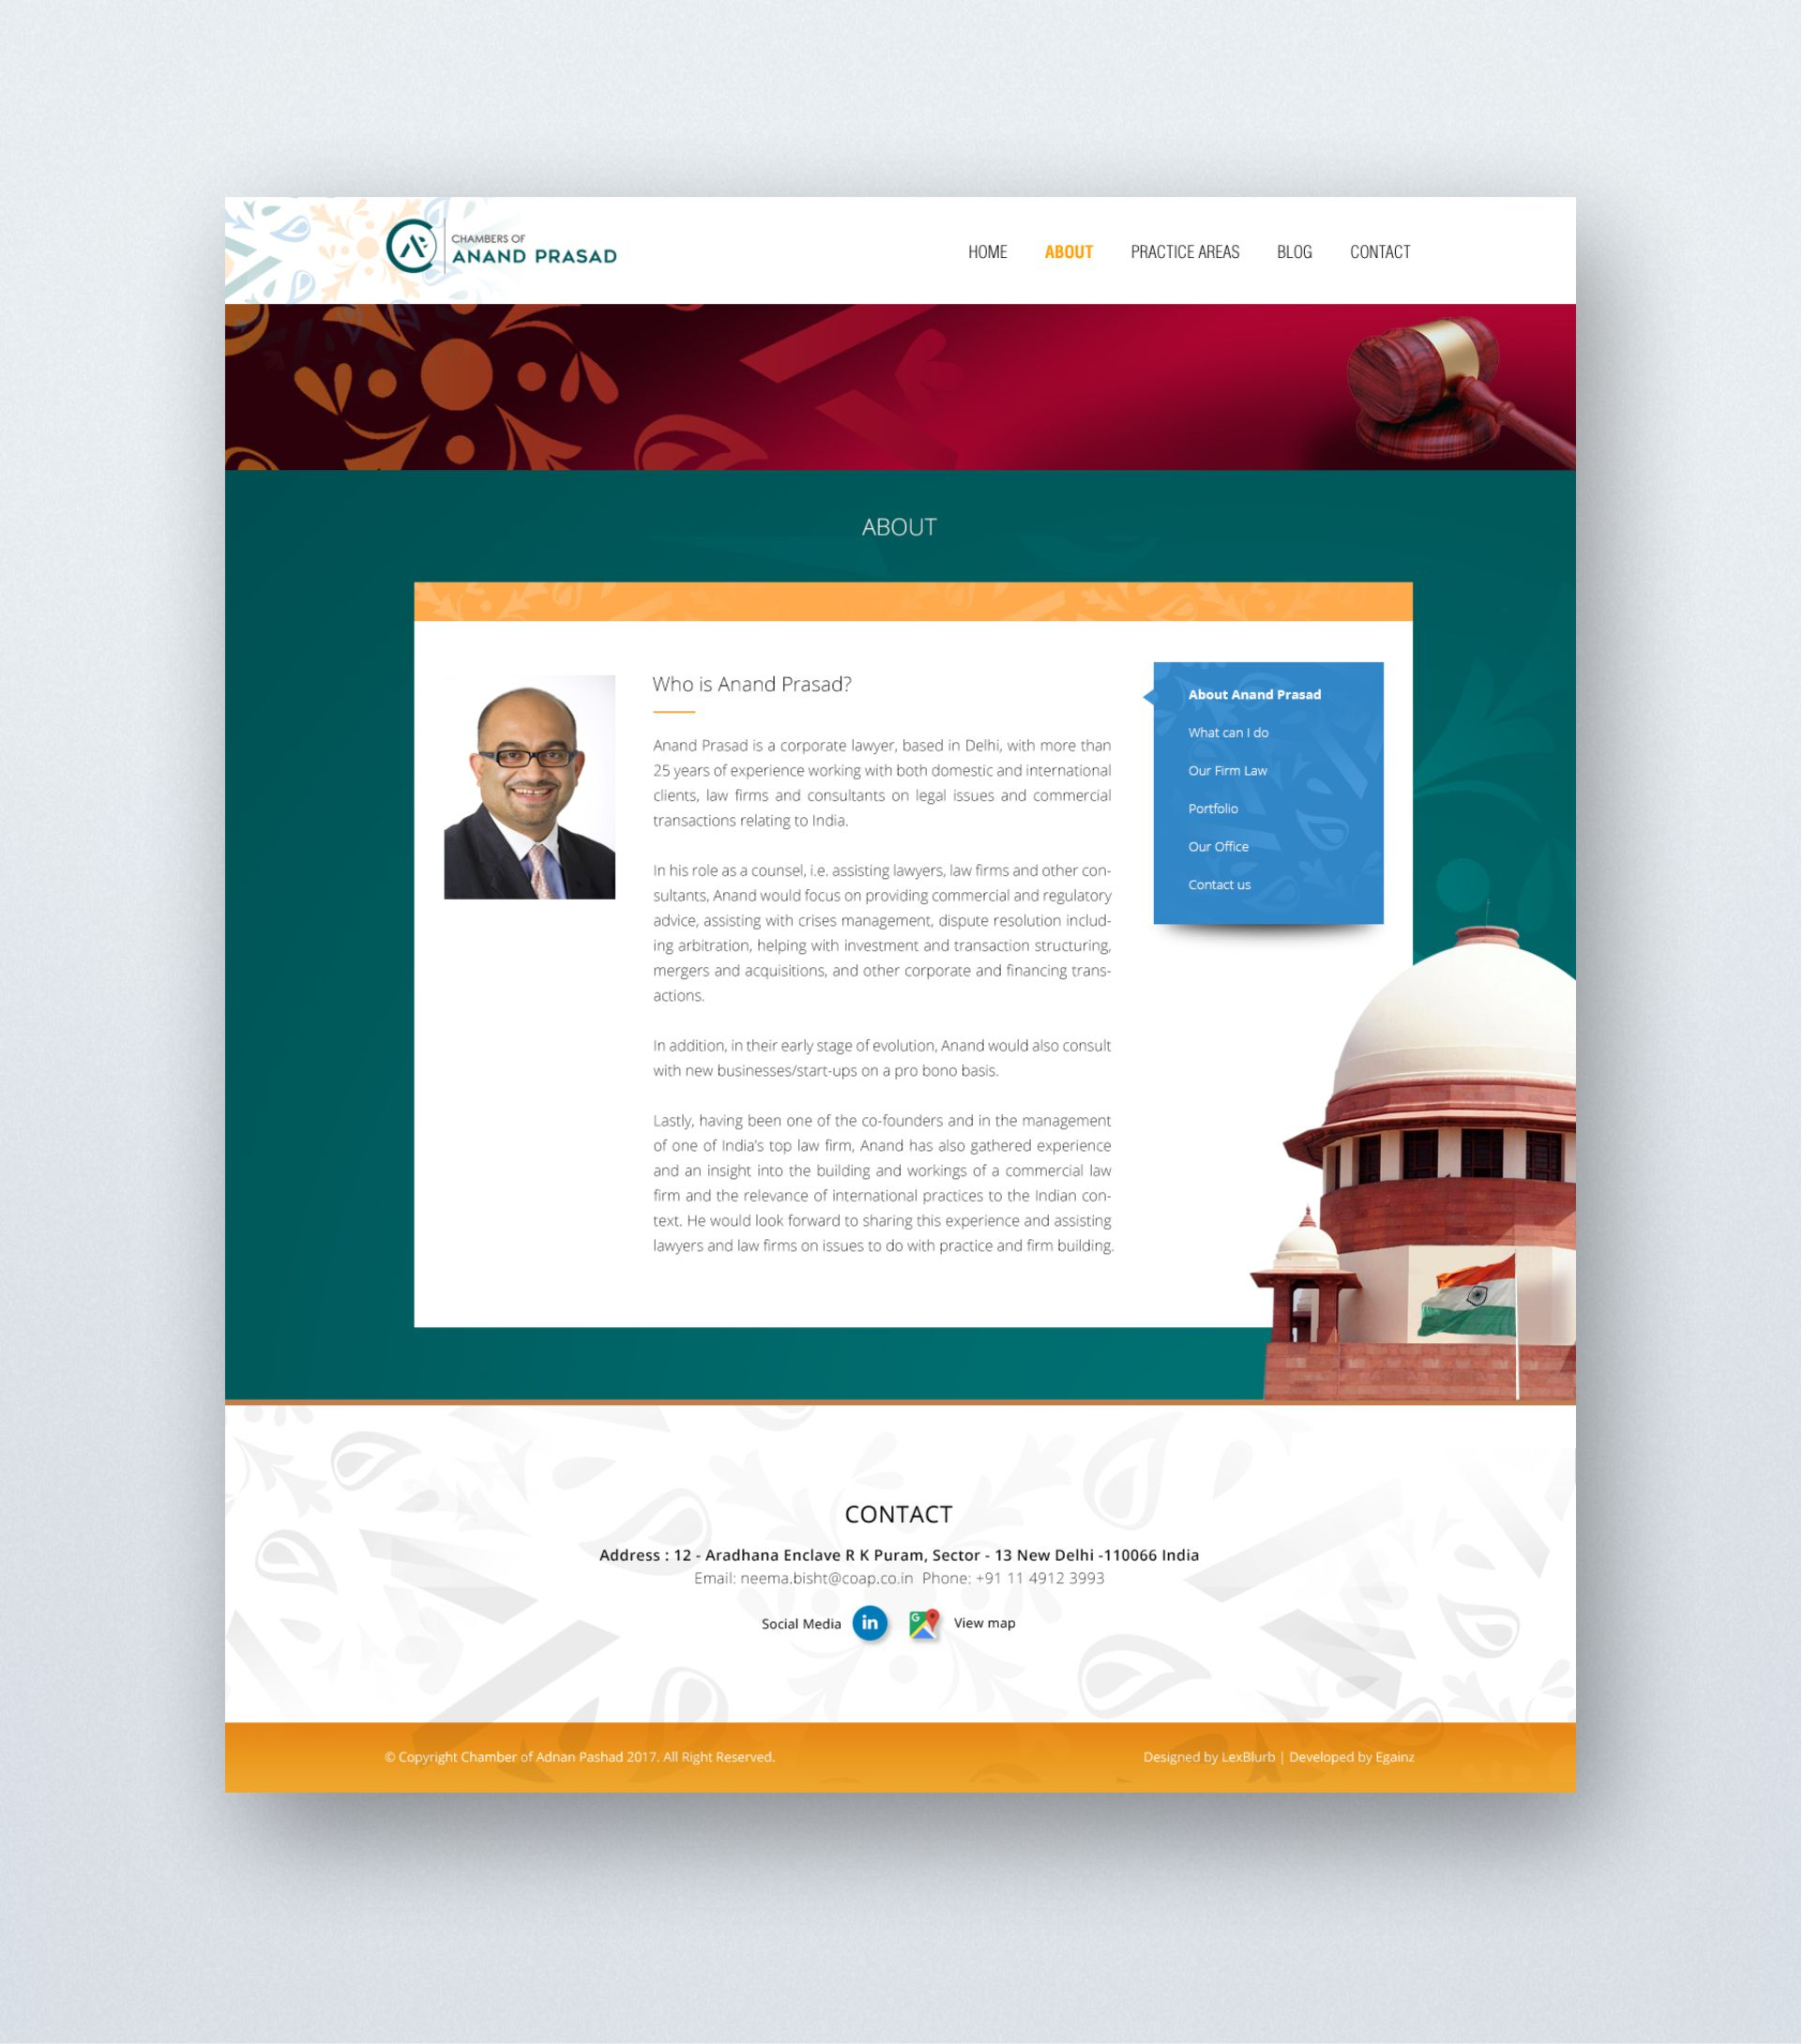 Chambers of Anand Prasad - Website Design - About